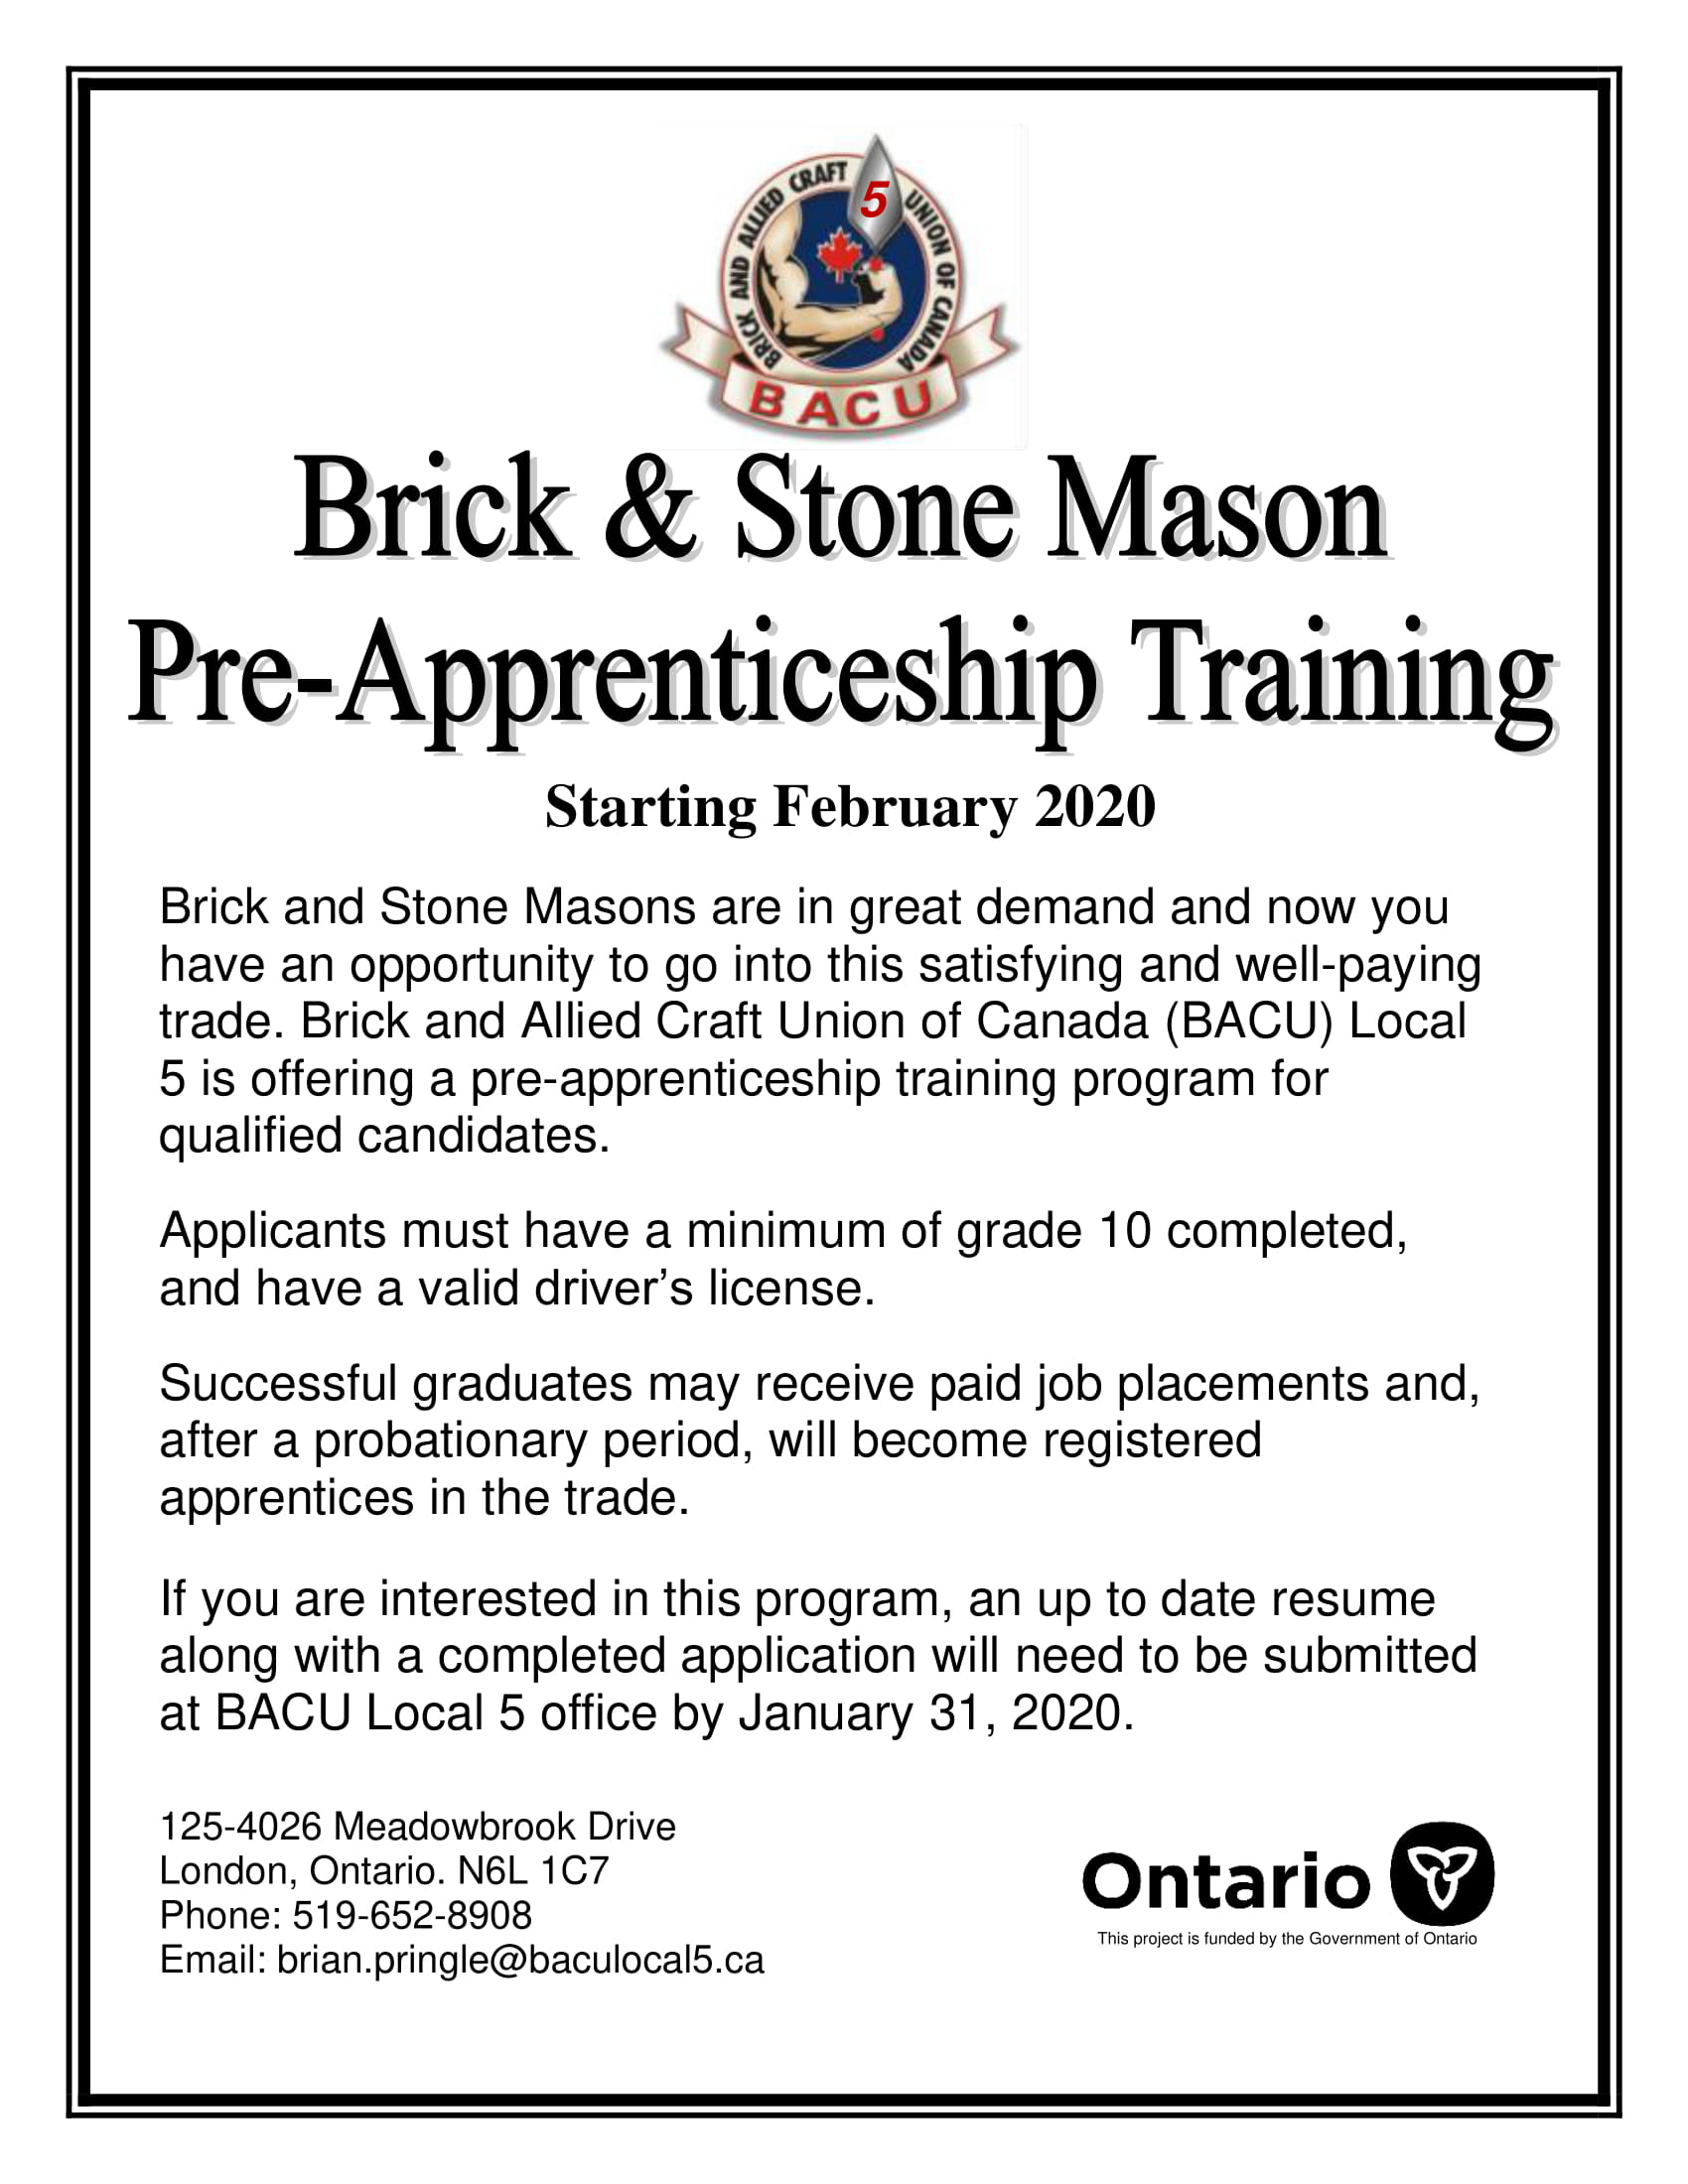 BACU Local 5 and the Government Ontario are offering pre-apprenticeship opportunities to aspiring apprentices in the province. Apply by January 31, 2020.